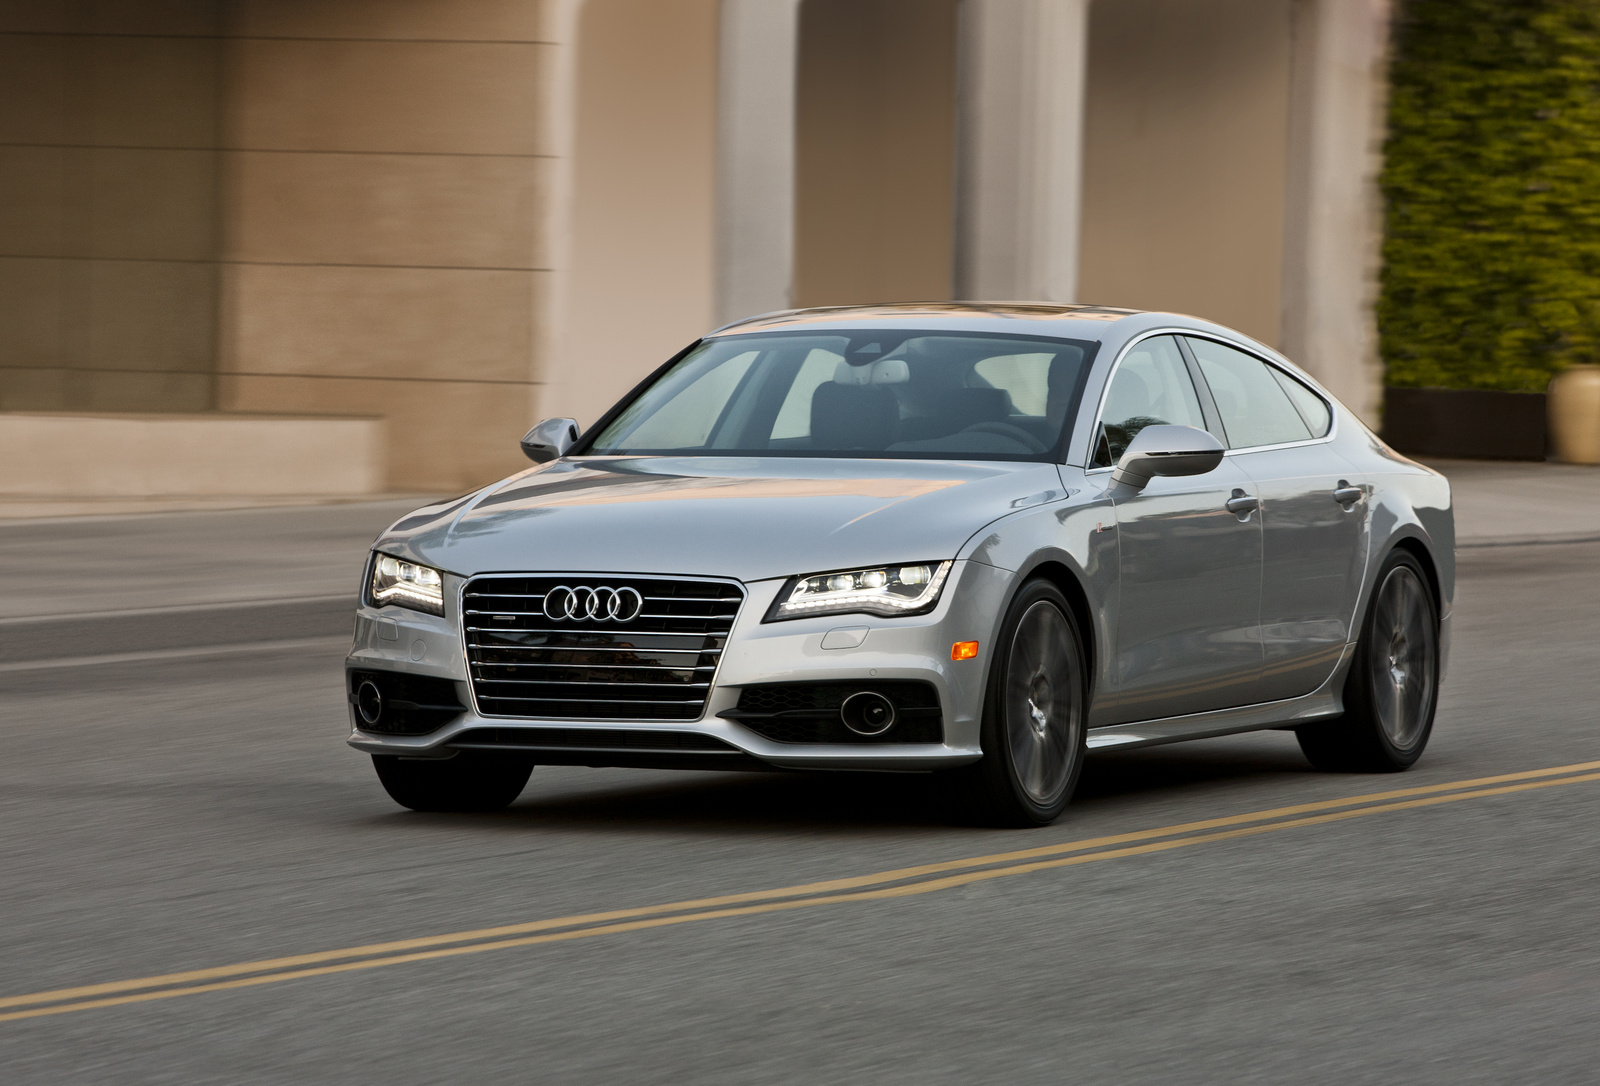 Used Audi For Sale  CarMax